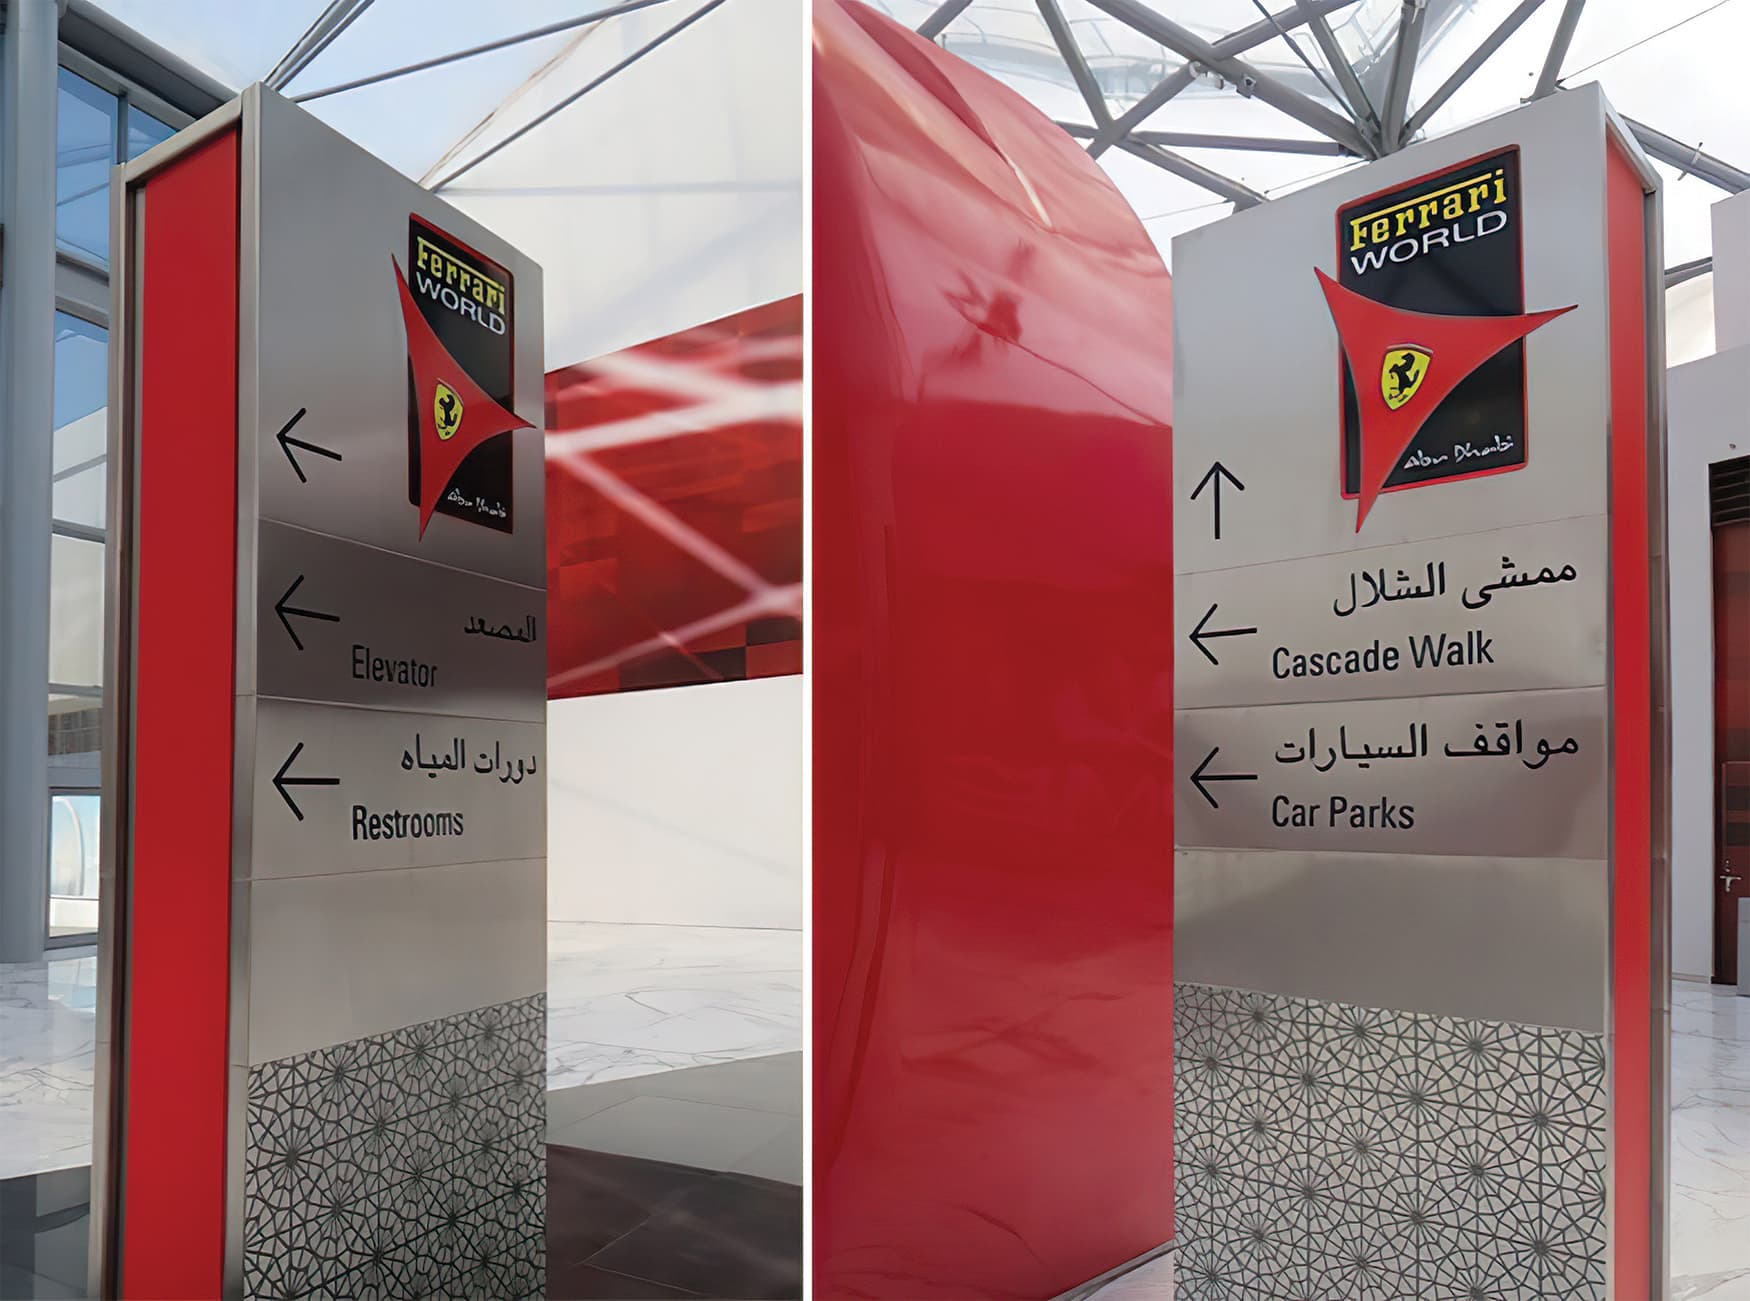 Ferrari World in Abu Dhabi in the United Arab Emirates. Project Wayfinding Design Directional Signage